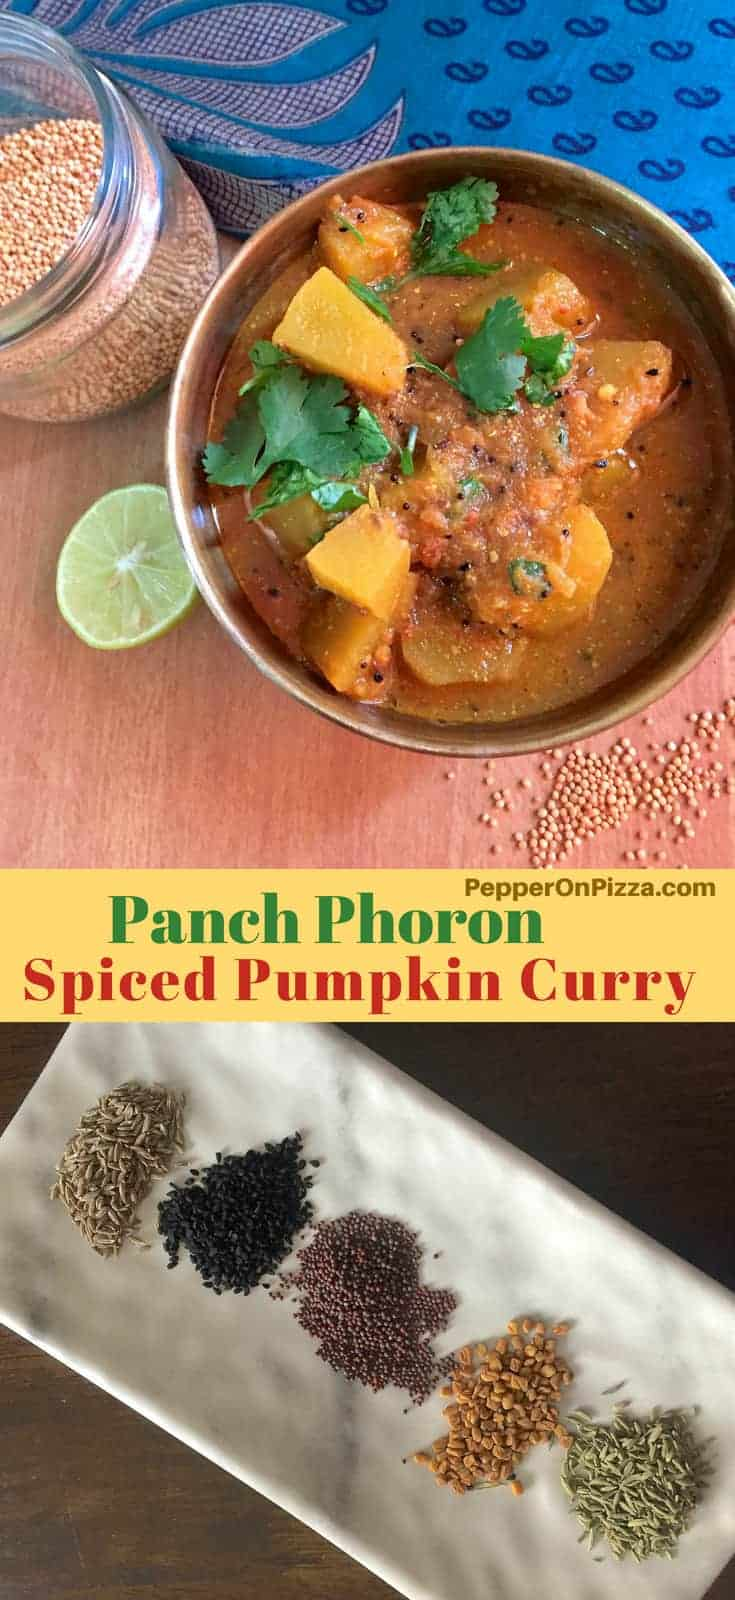 Chunks of pumpkin in a brass bowl -Spiced pumpkin curry. A plate of traditional Indian 5 spice blend and yellow mustard